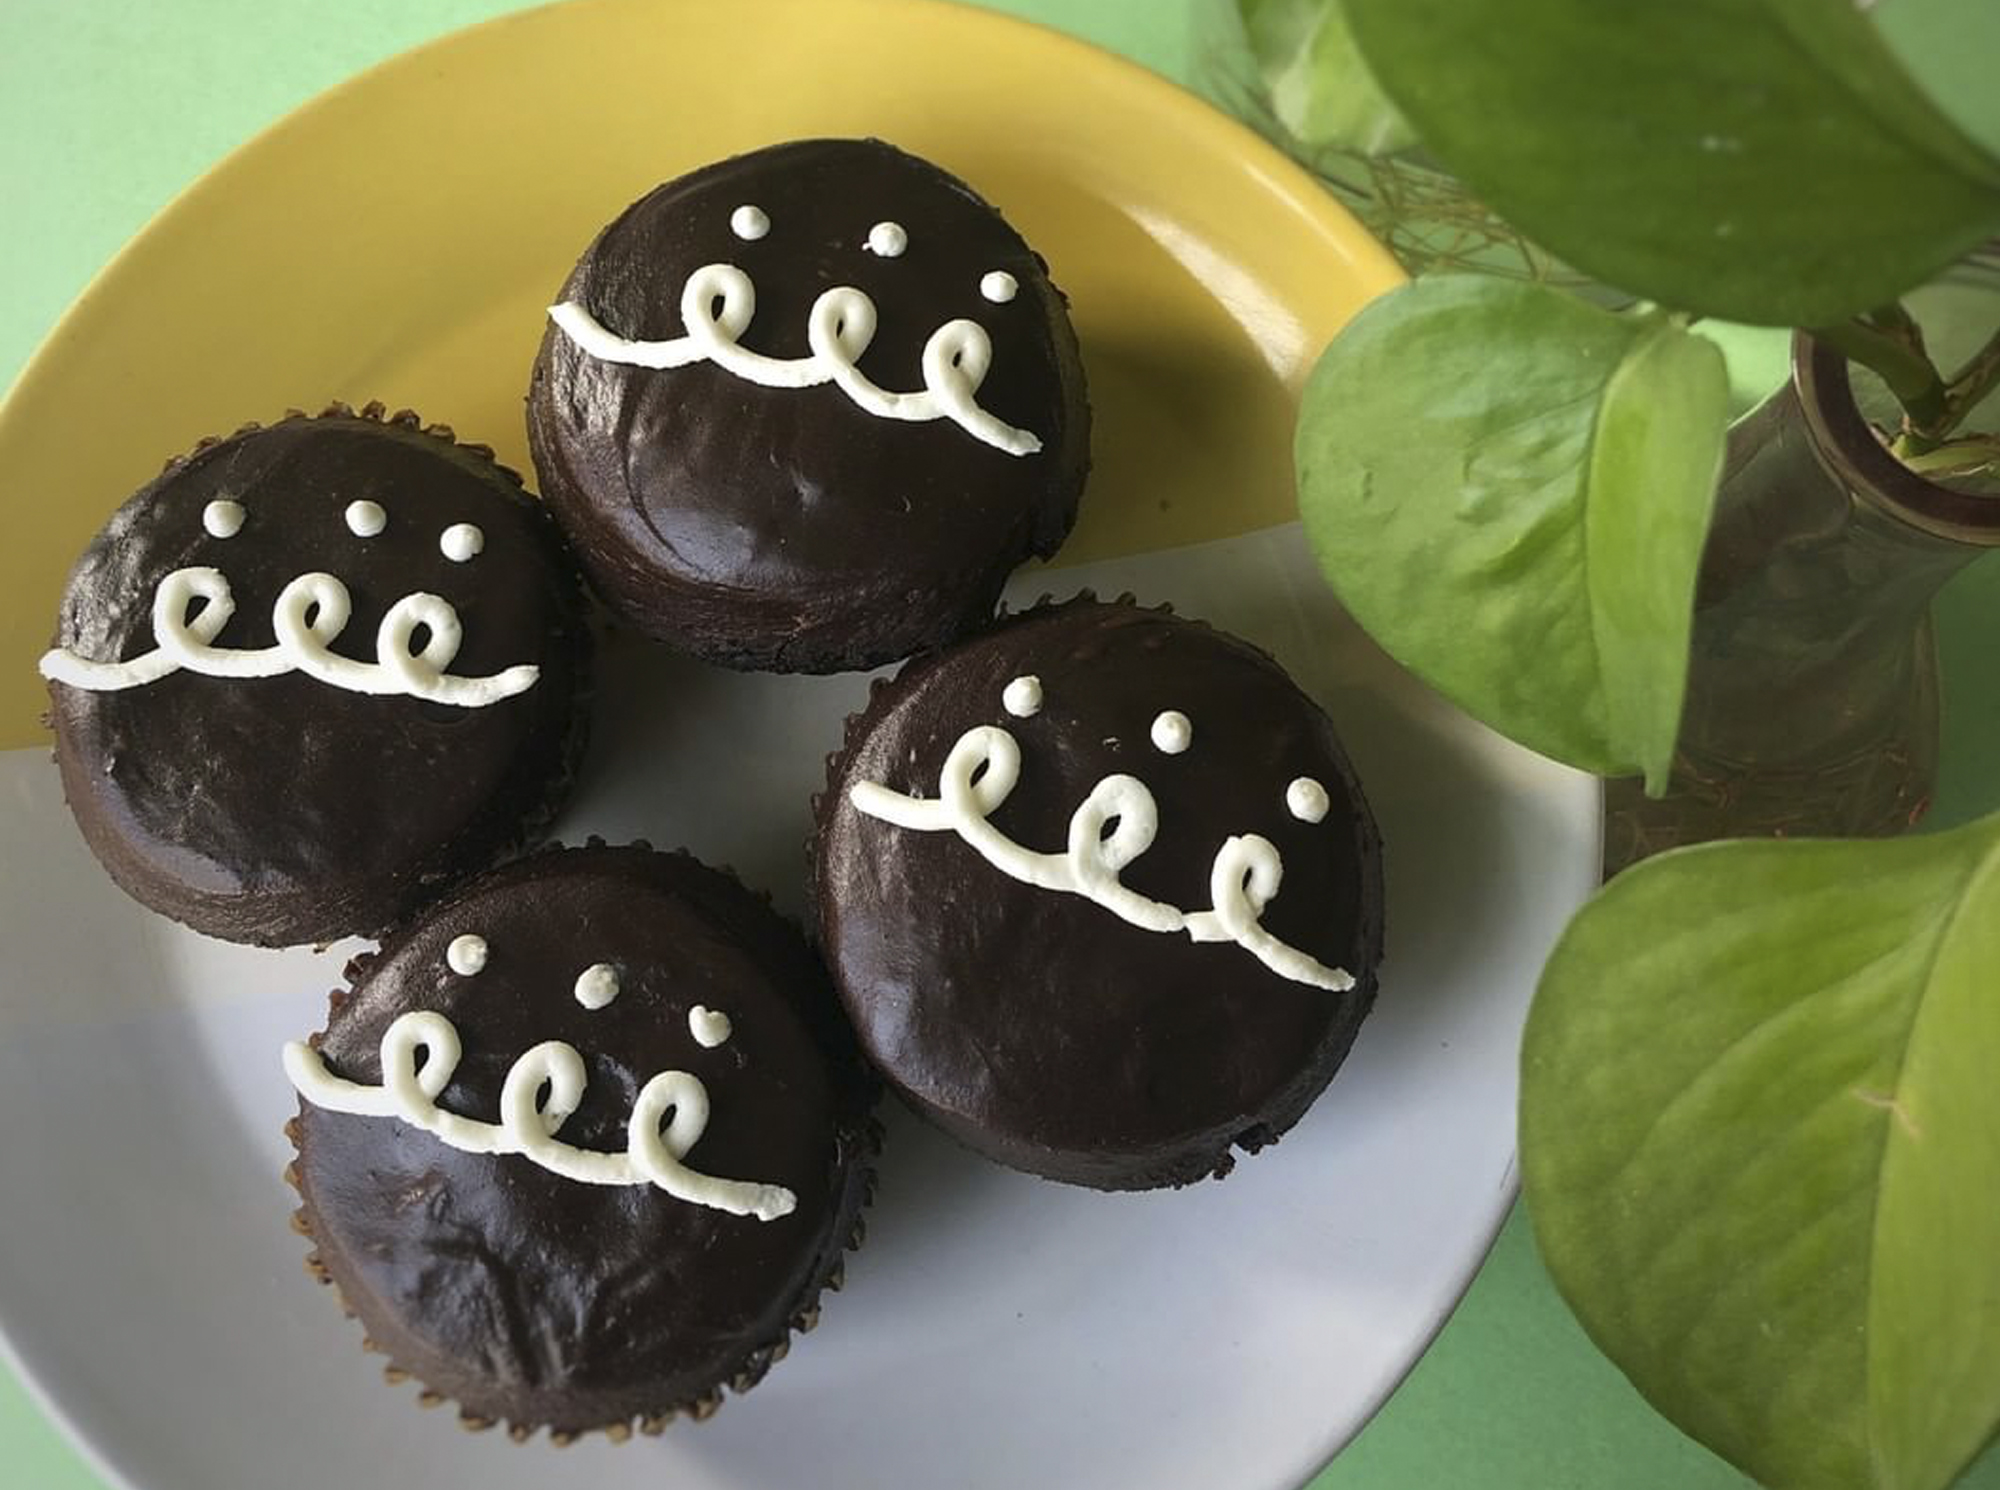 Chocolate cupcales